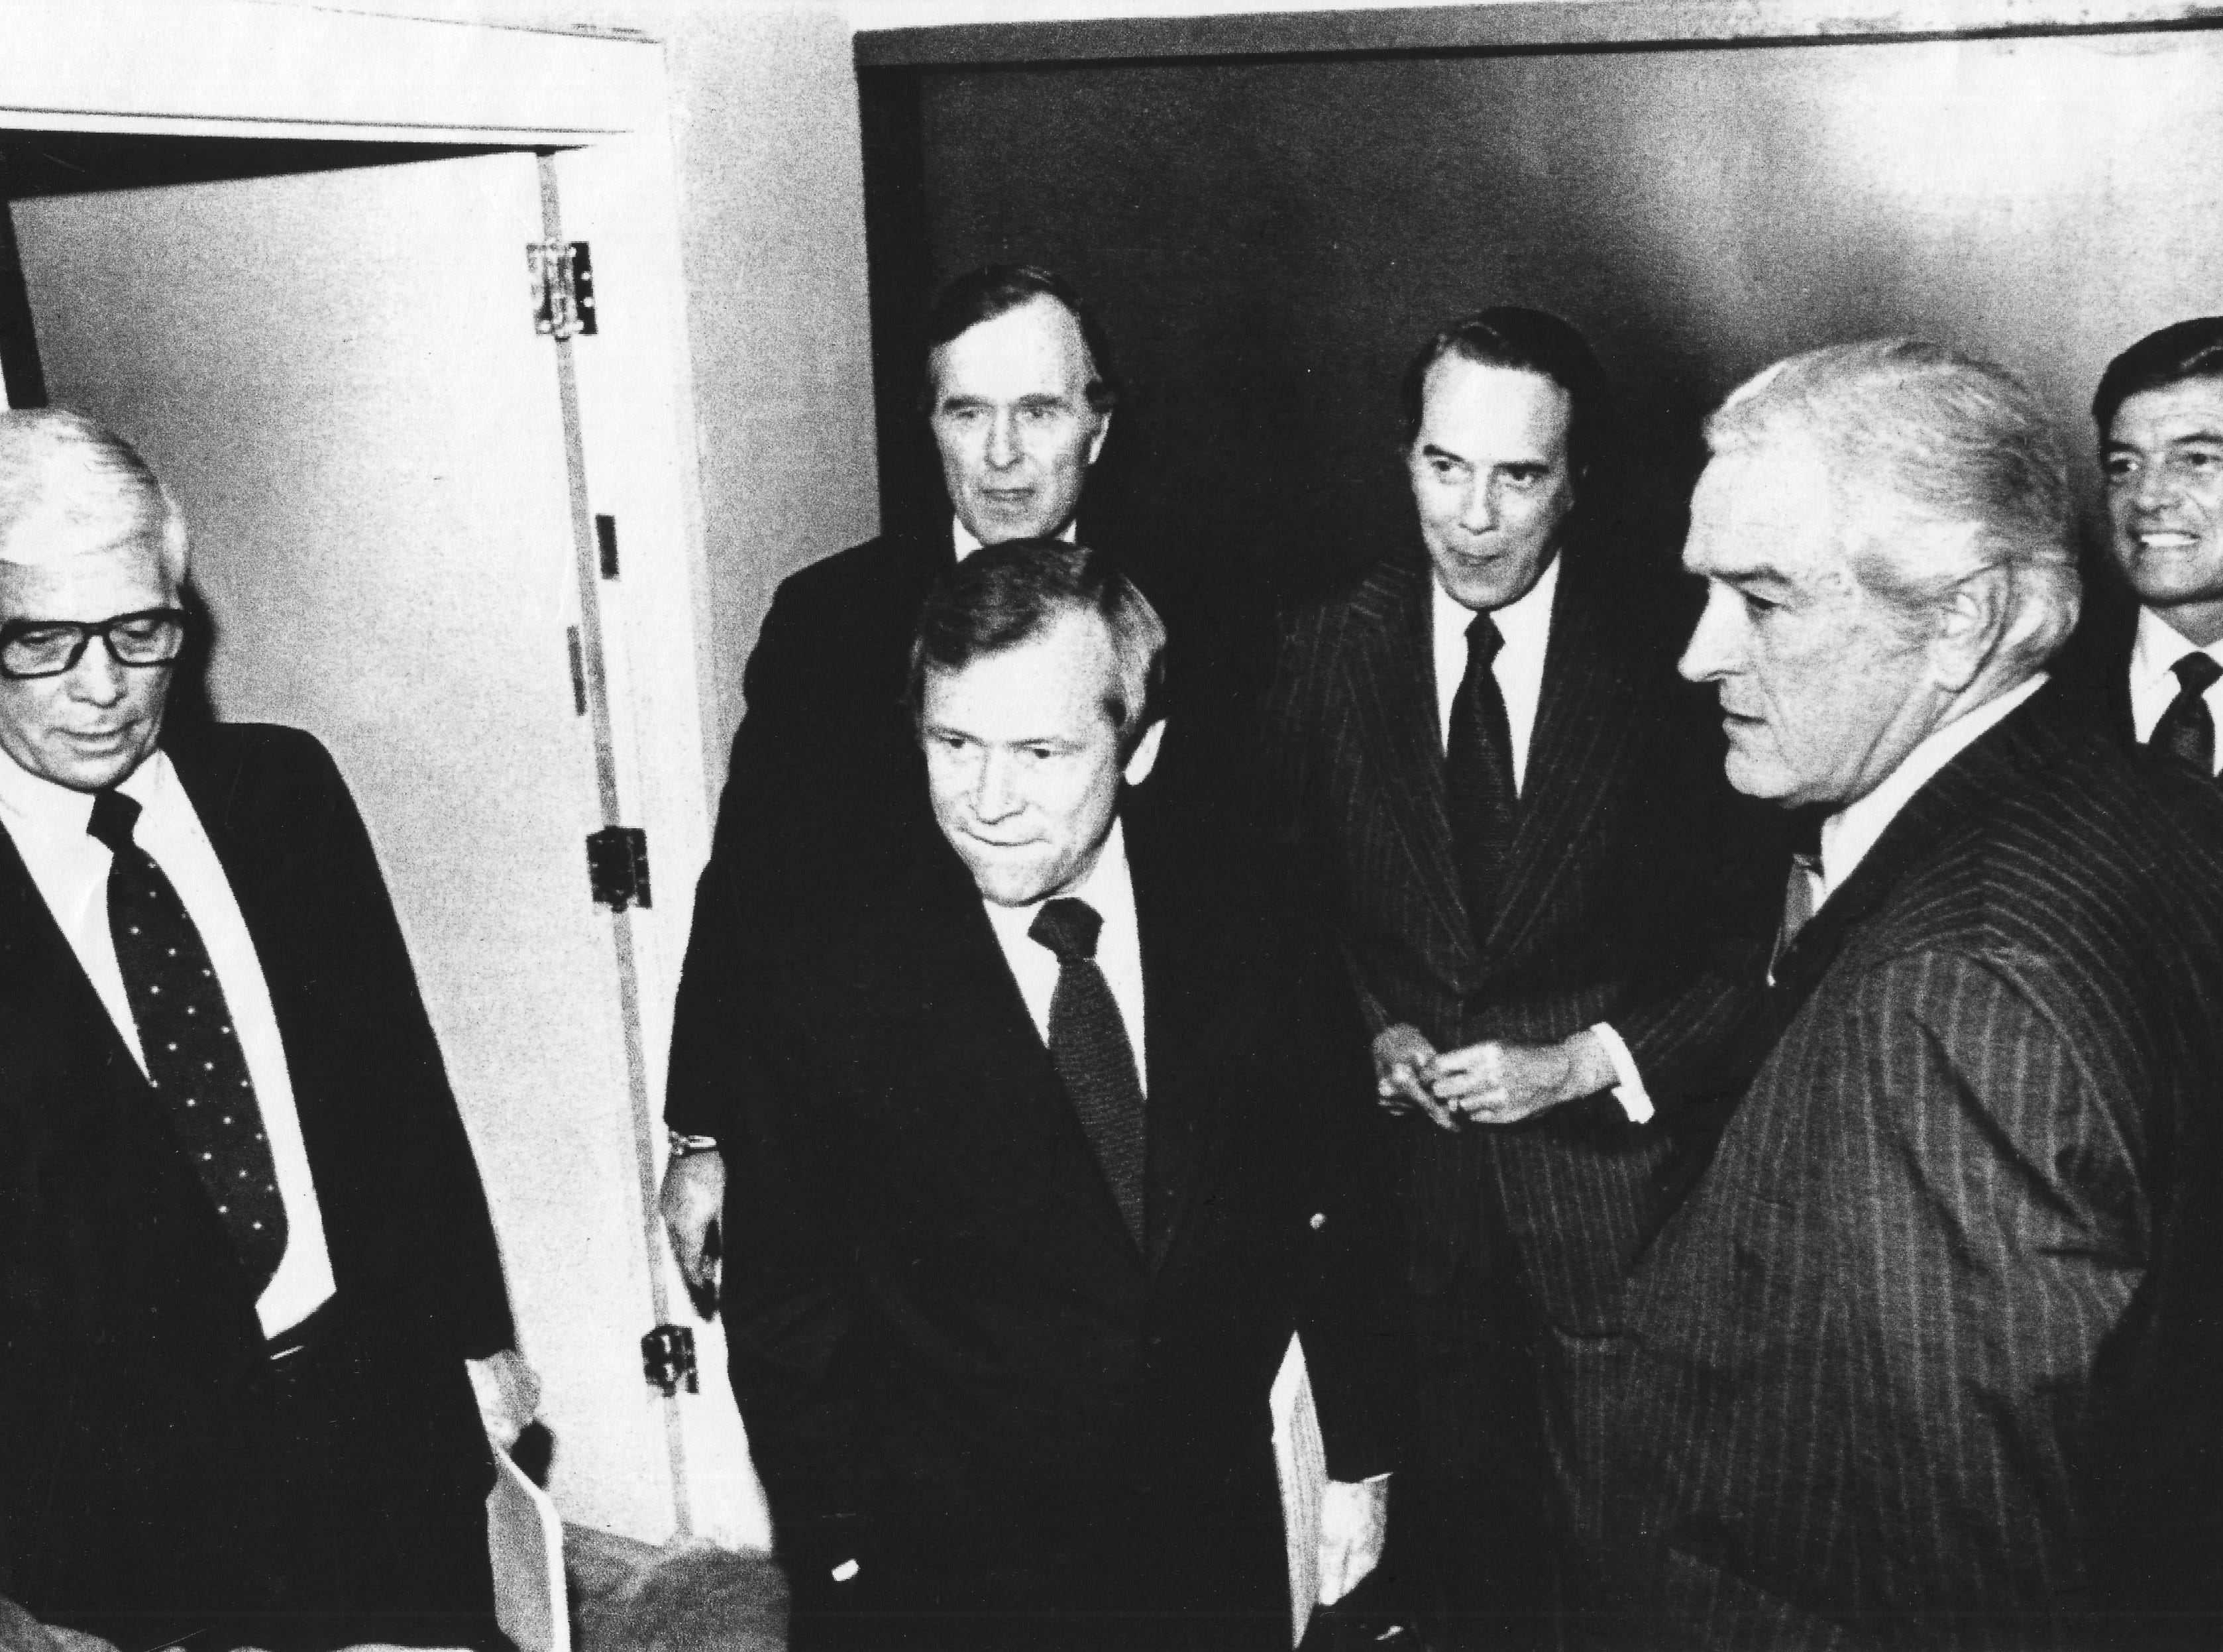 Waiting to take the stage for a debate are Republican presidential candidates Rep. John Anderson, left, U.S. Sen. Howard H. Baker Jr., George H.W. Bush, Sen. Bob Dole, former Texas Gov. John Connally and Rep. Phil Crane on Jan. 5, 1980, in Des Moines, Iowa.